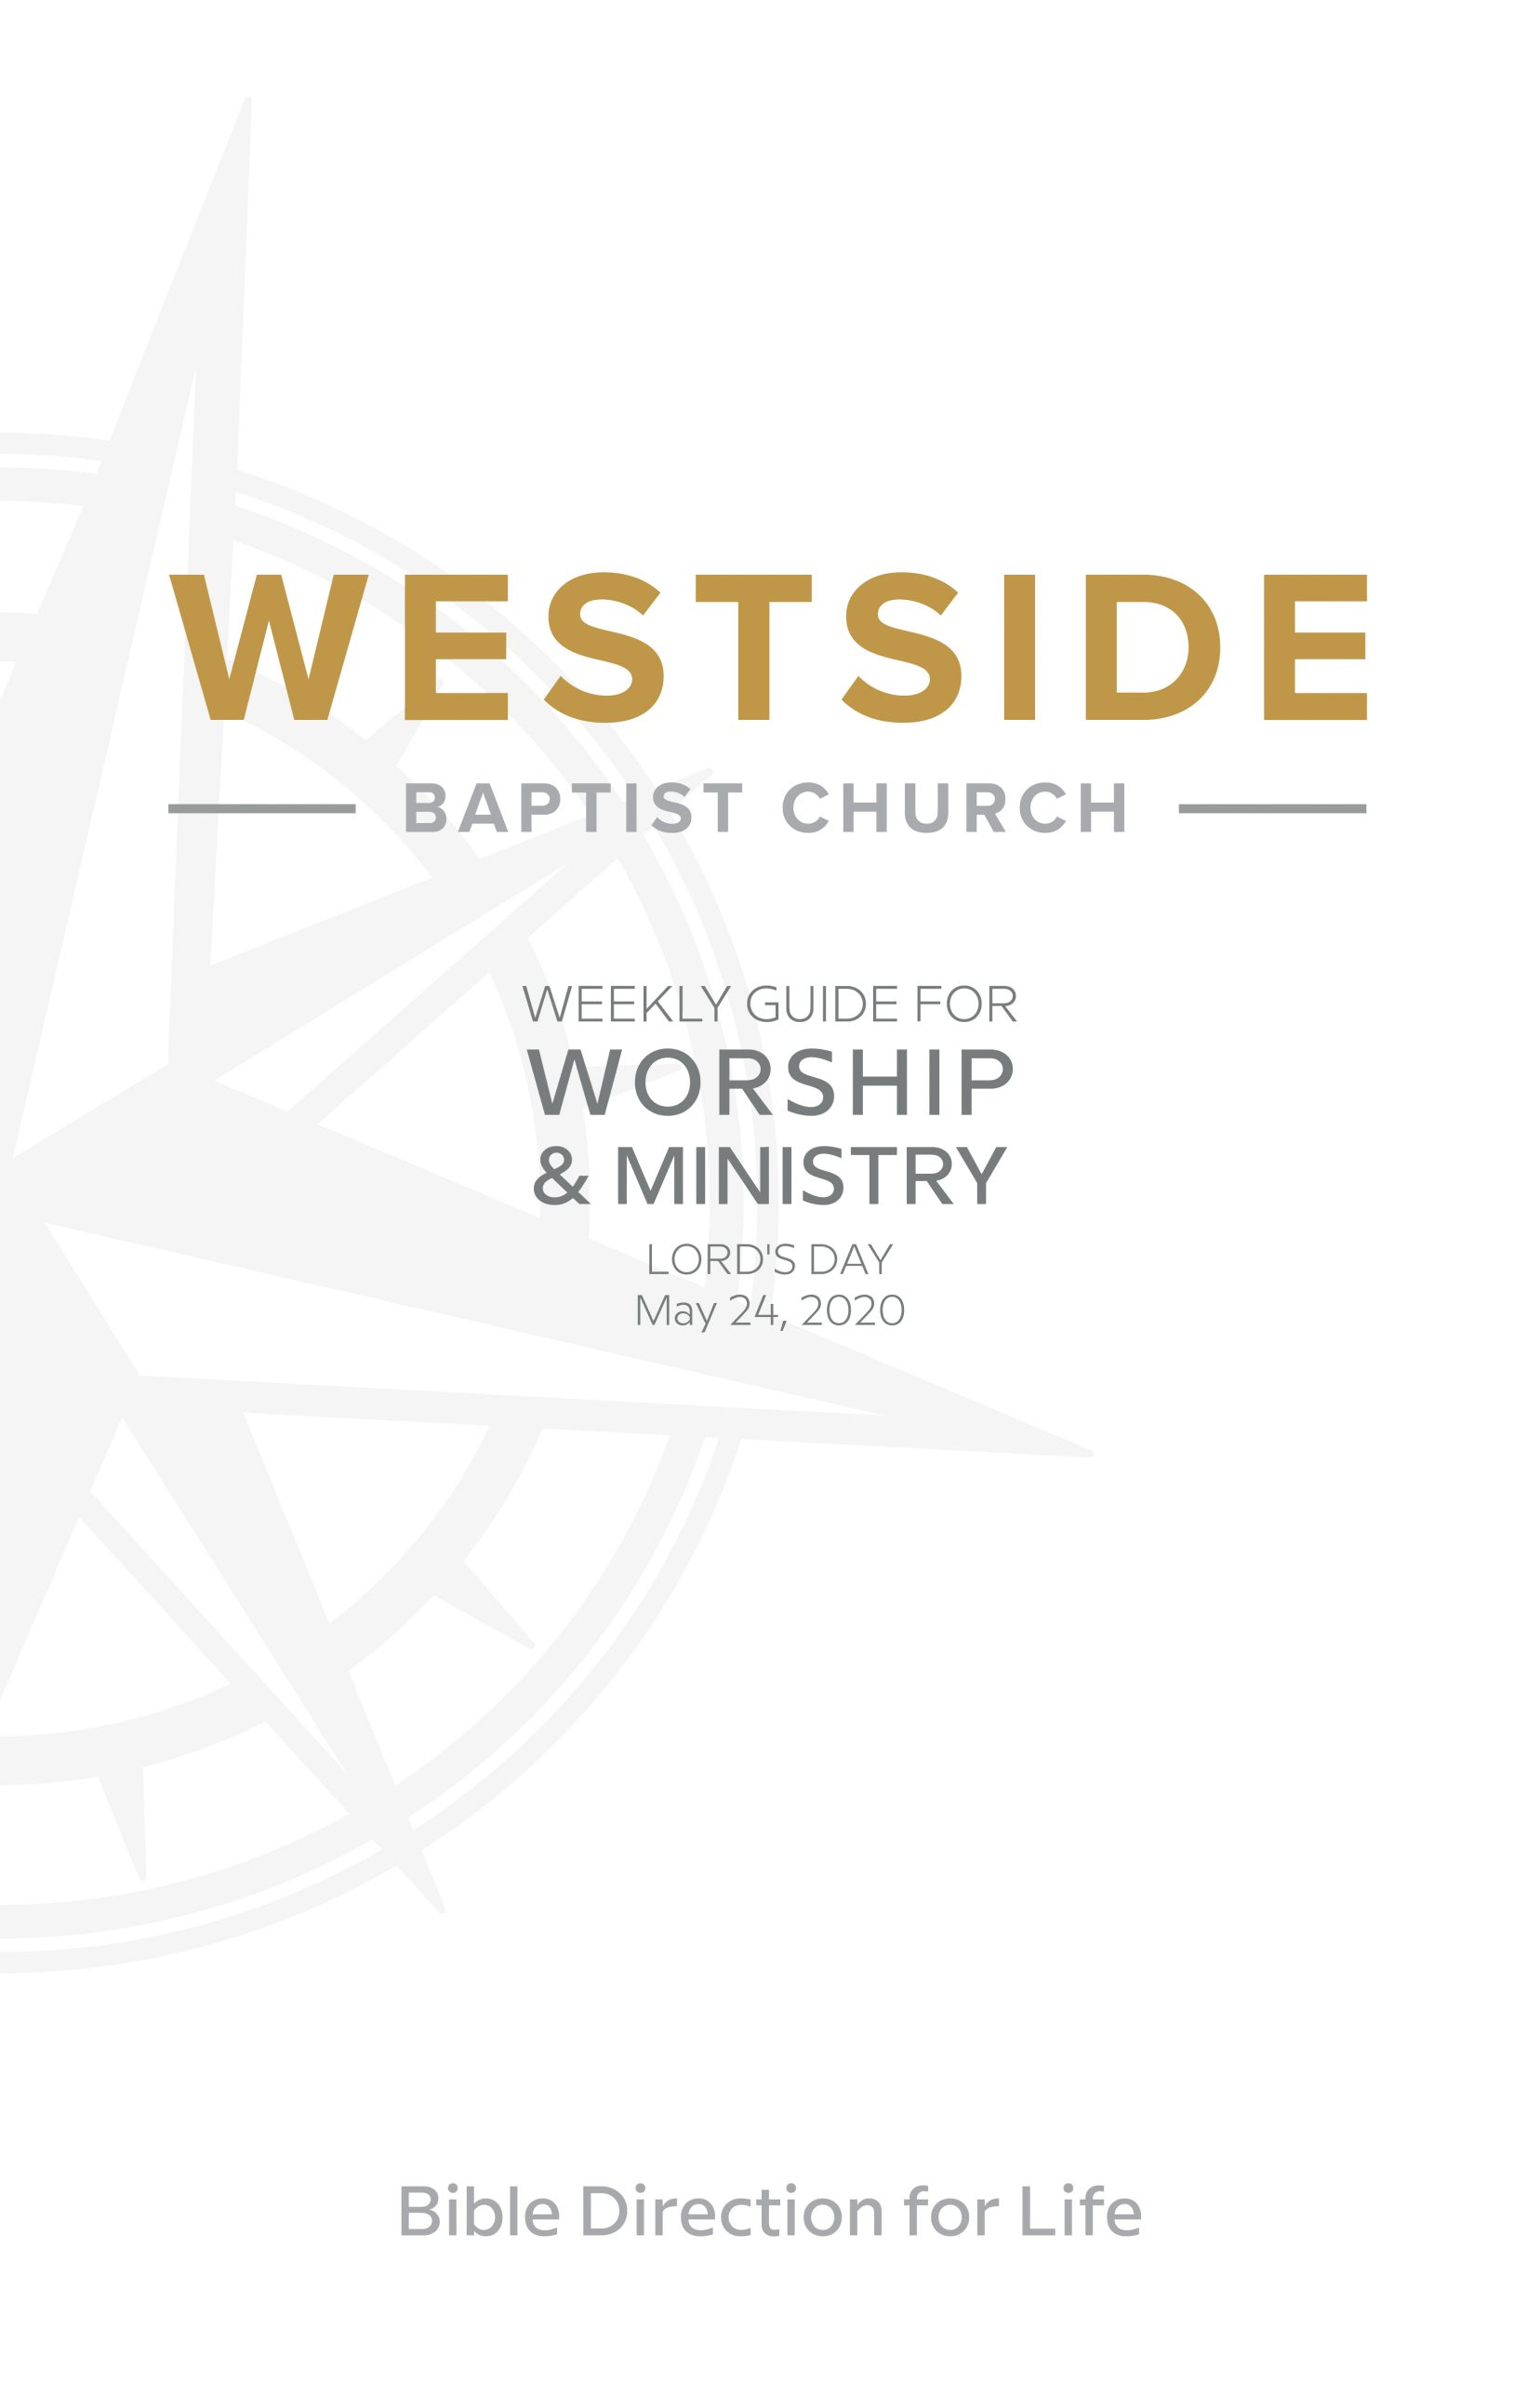 Weekly Guide for Worship and Ministry — May 31